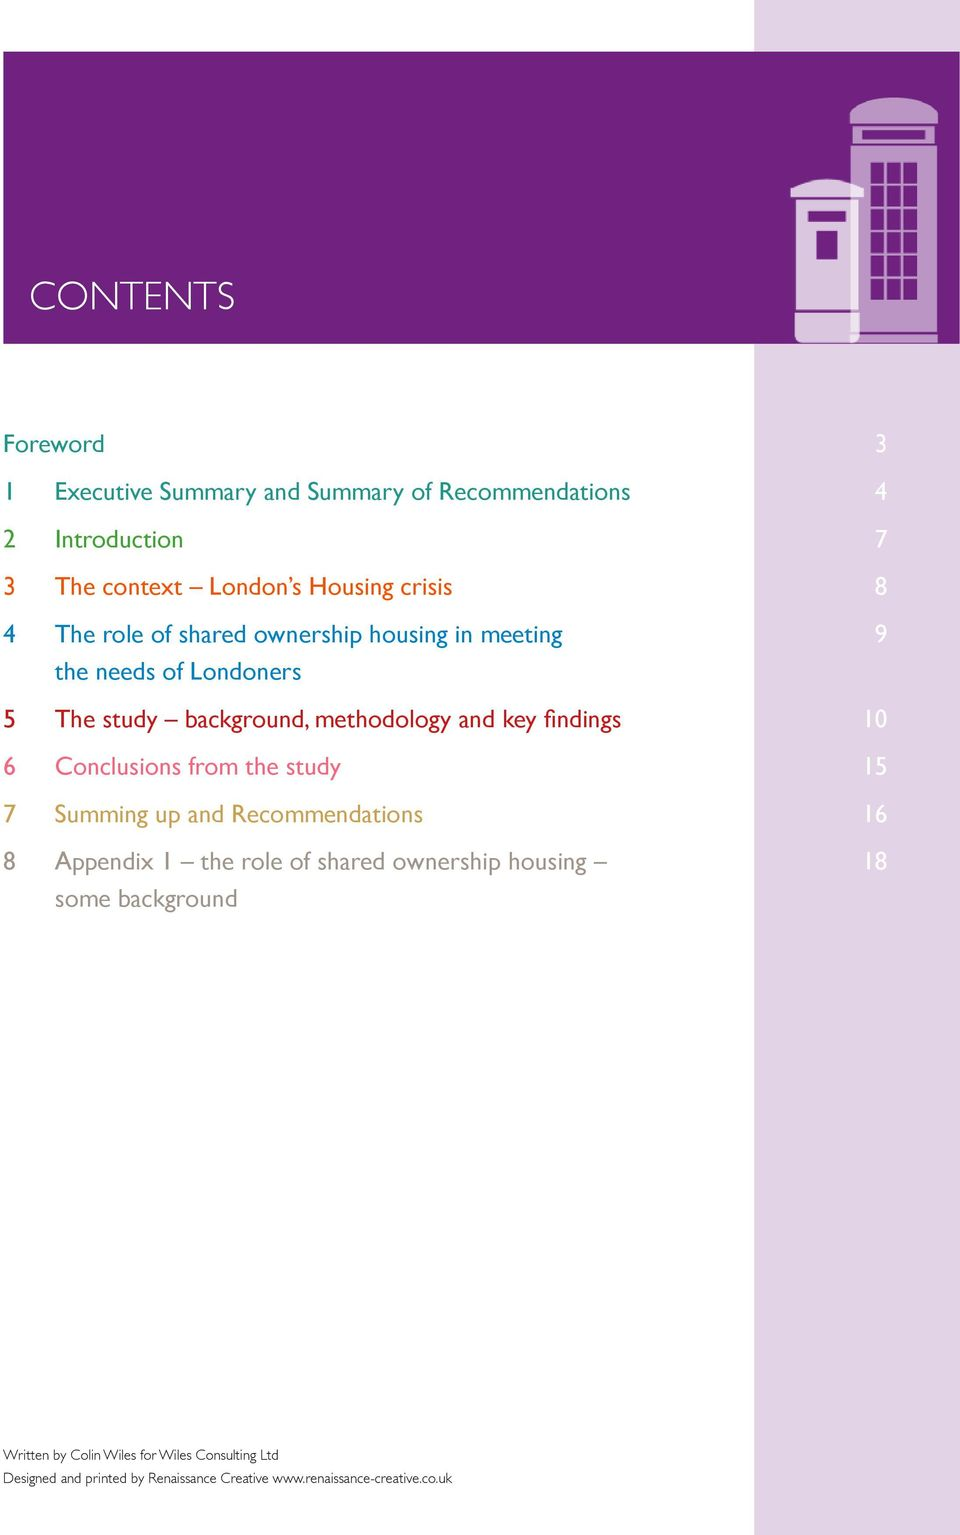 6 Conclusions from the study 15 7 Summing up and Recommendations 16 8 Appendix 1 the role of shared ownership housing 18 some